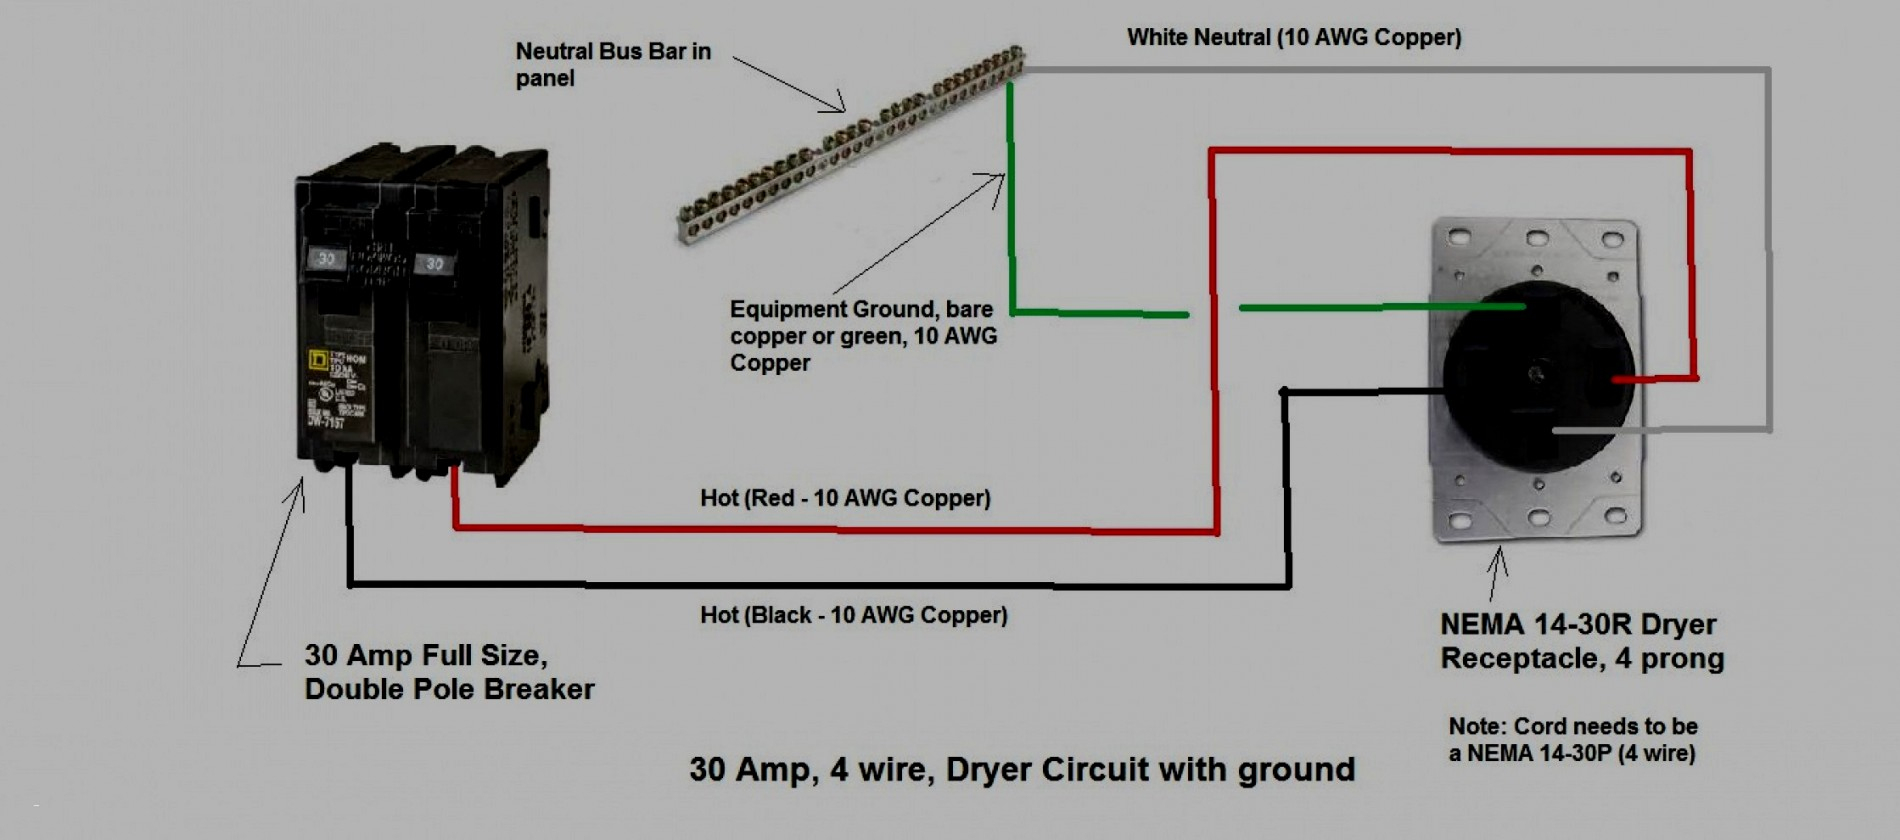 horn relay wiring diagram moreover wiring 4 wire cord to 3 prongwiring diagram for dryer outlet 4 prong furthermore 4 prong plug 9horn relay wiring diagram moreover